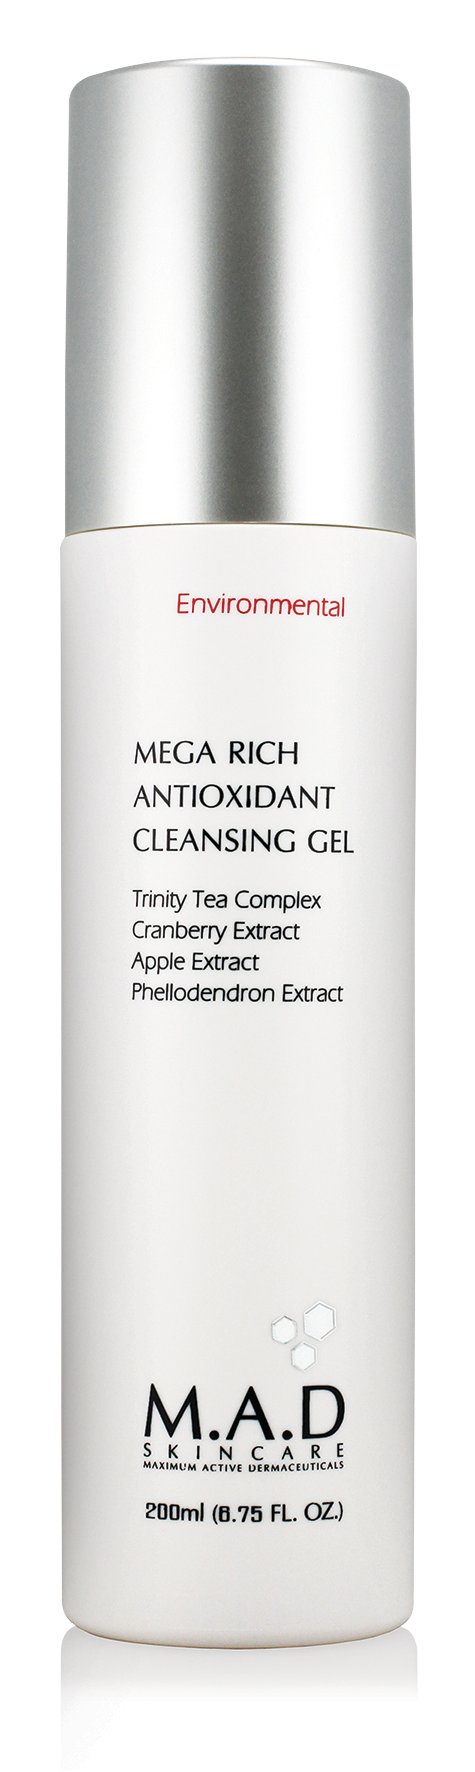 MAD MEGA RICH ANTIOXIDAN CLEANSING GEL